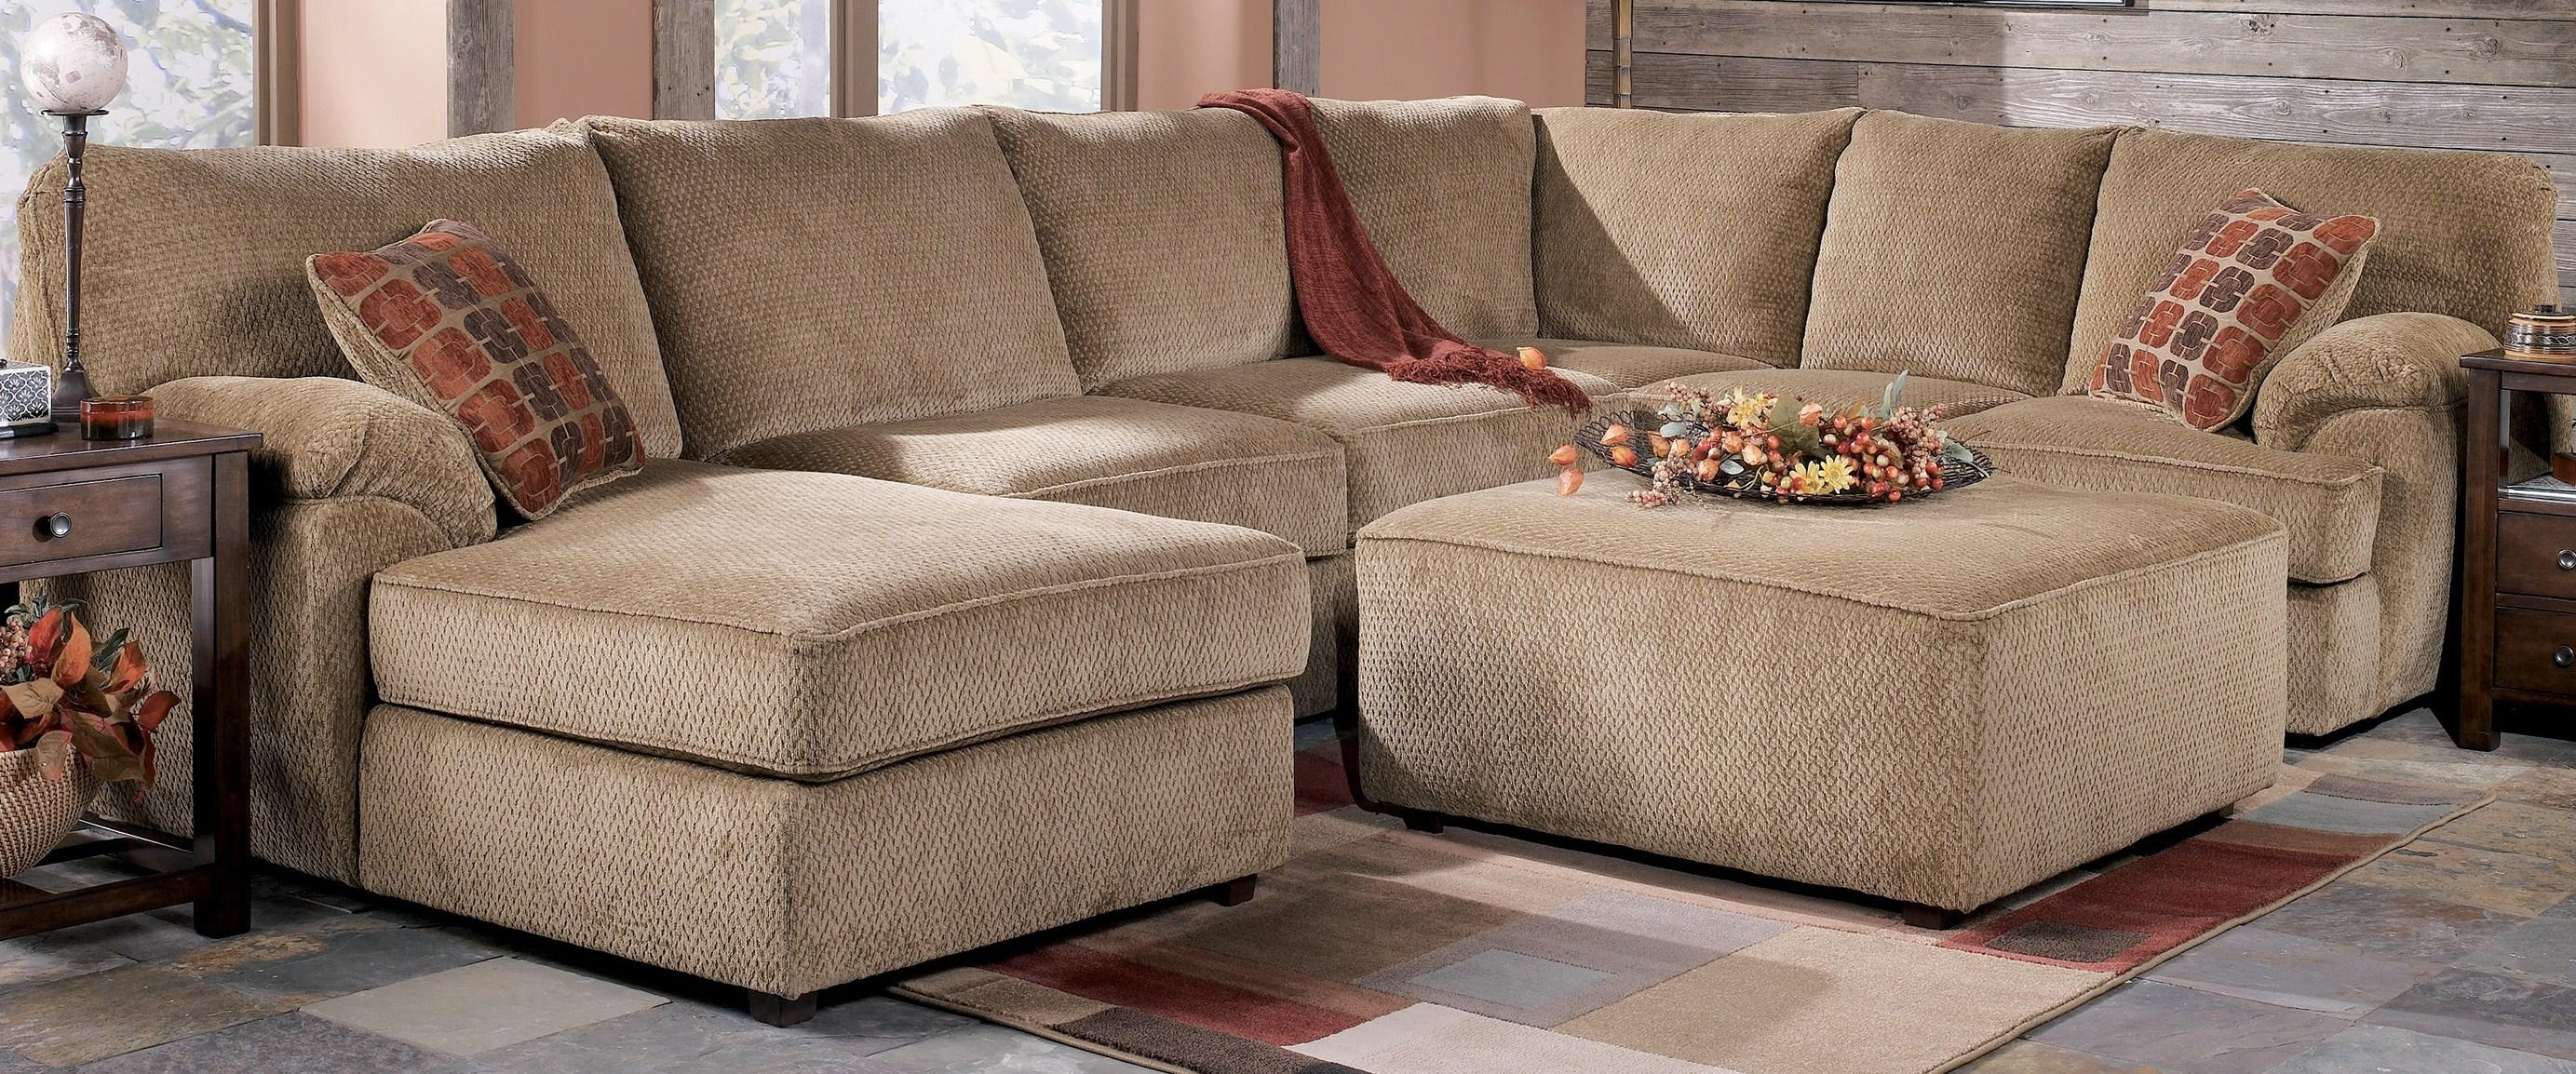 Collection In Lazy Boy Coffee Tables With Round Sectional Sofa Regarding Lazyboy Sectional Sofas (Image 1 of 20)